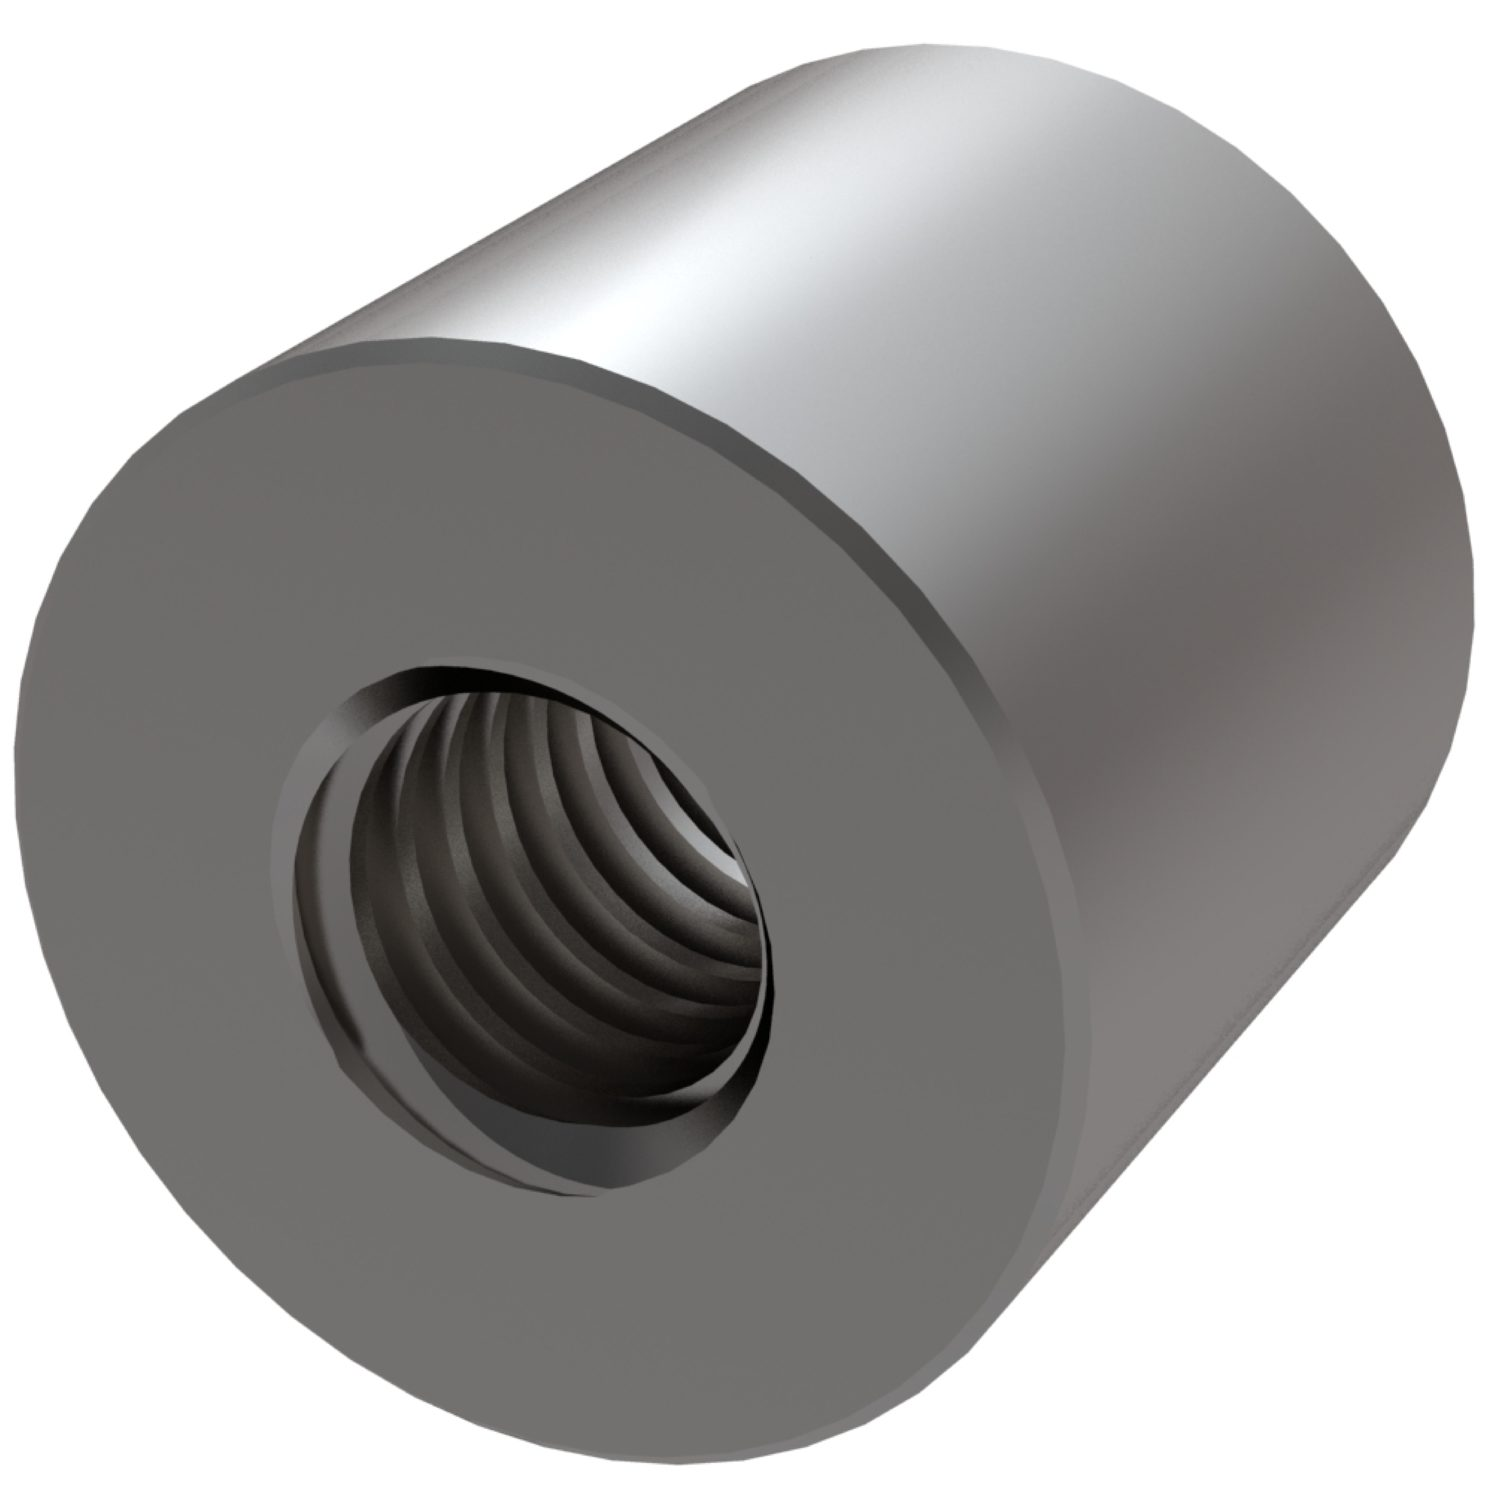 Cylindrical Stainless Steel Nuts Stainless steel lead screw nut for trapezoidal thread.